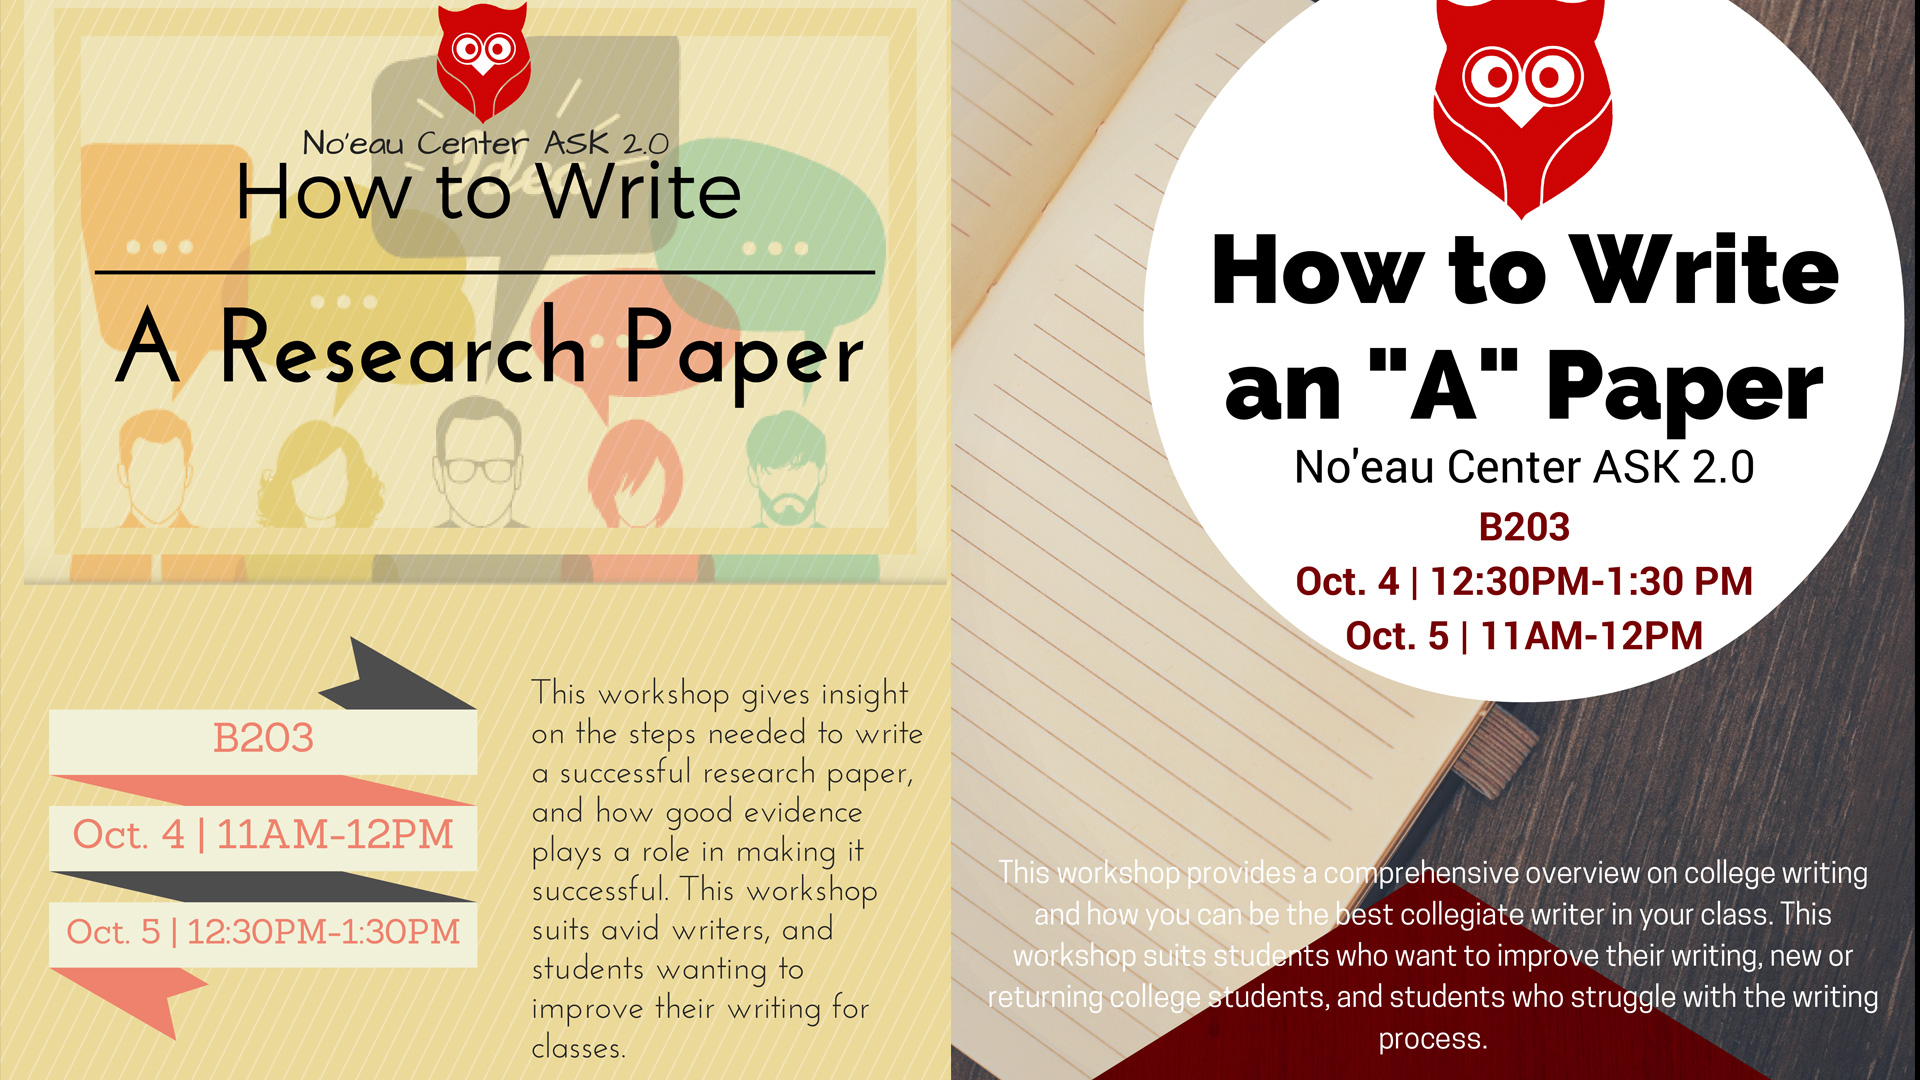 how to write a good college research paper We have a good expertise in completing various academic papers and today we've prepared some useful tips to share with you how to write a college research paper.